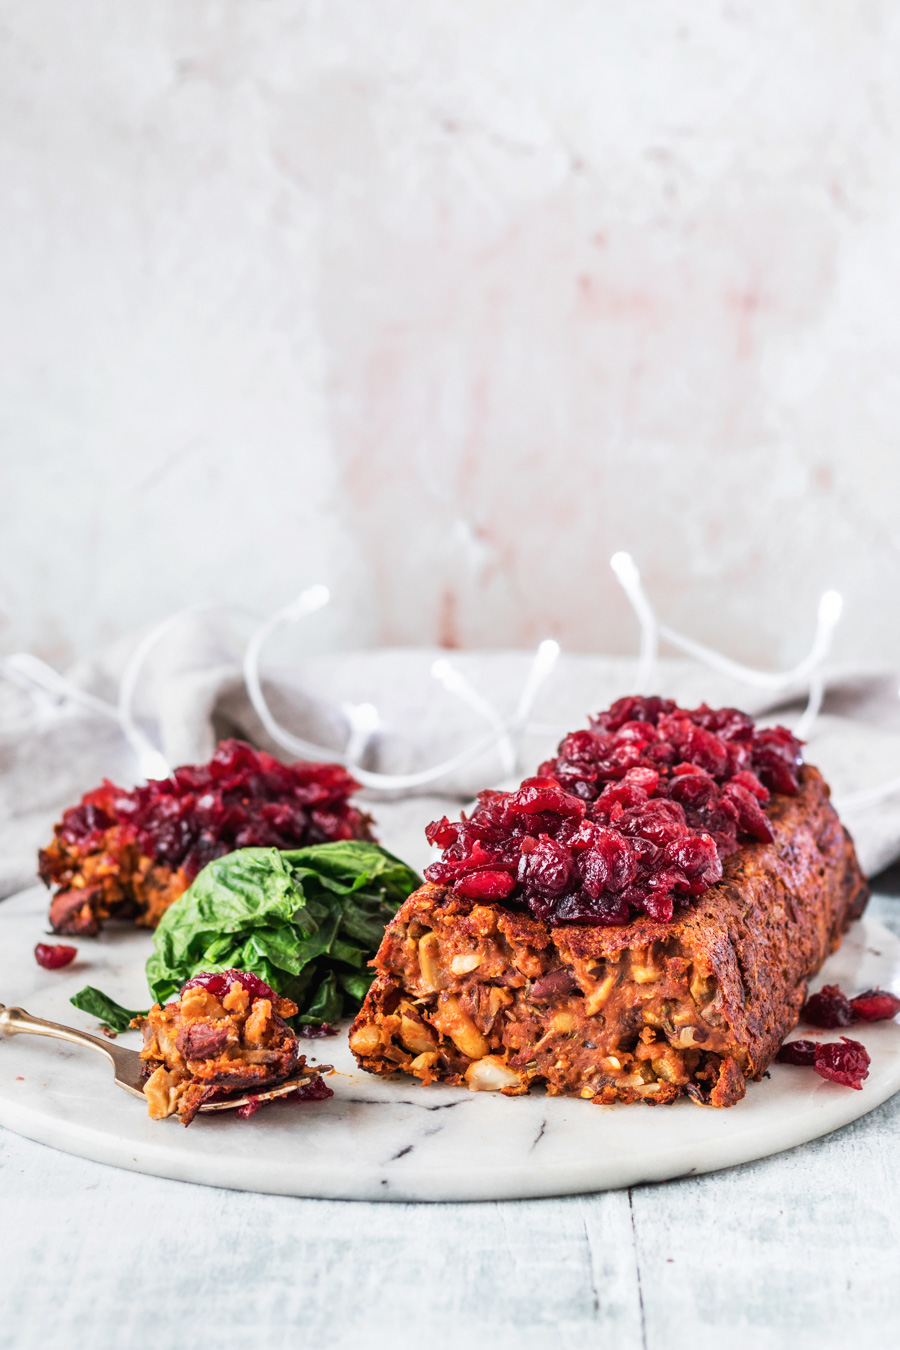 Vegan Red Lentil Nut Roast With Hot Cranberries